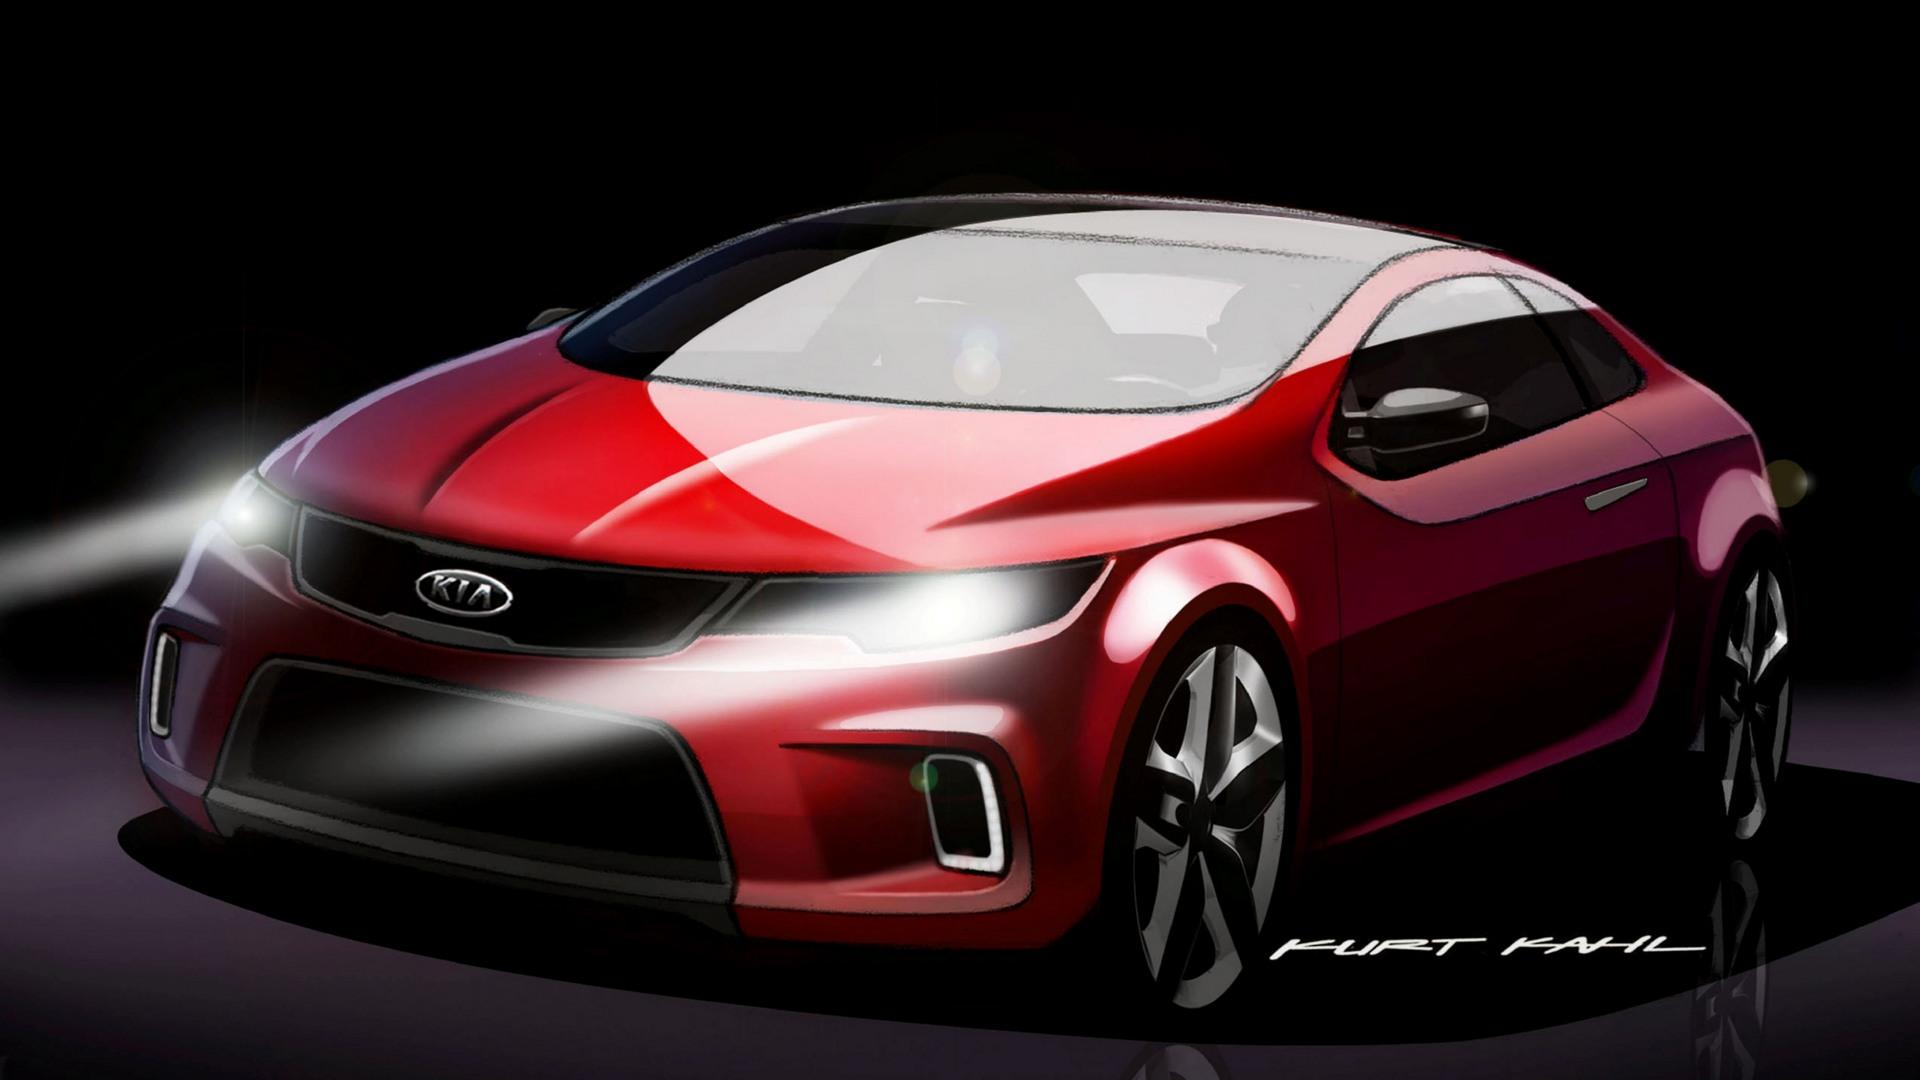 Muscle Car Wallpaper 2008 Kia Koup Concept News And Information Research And